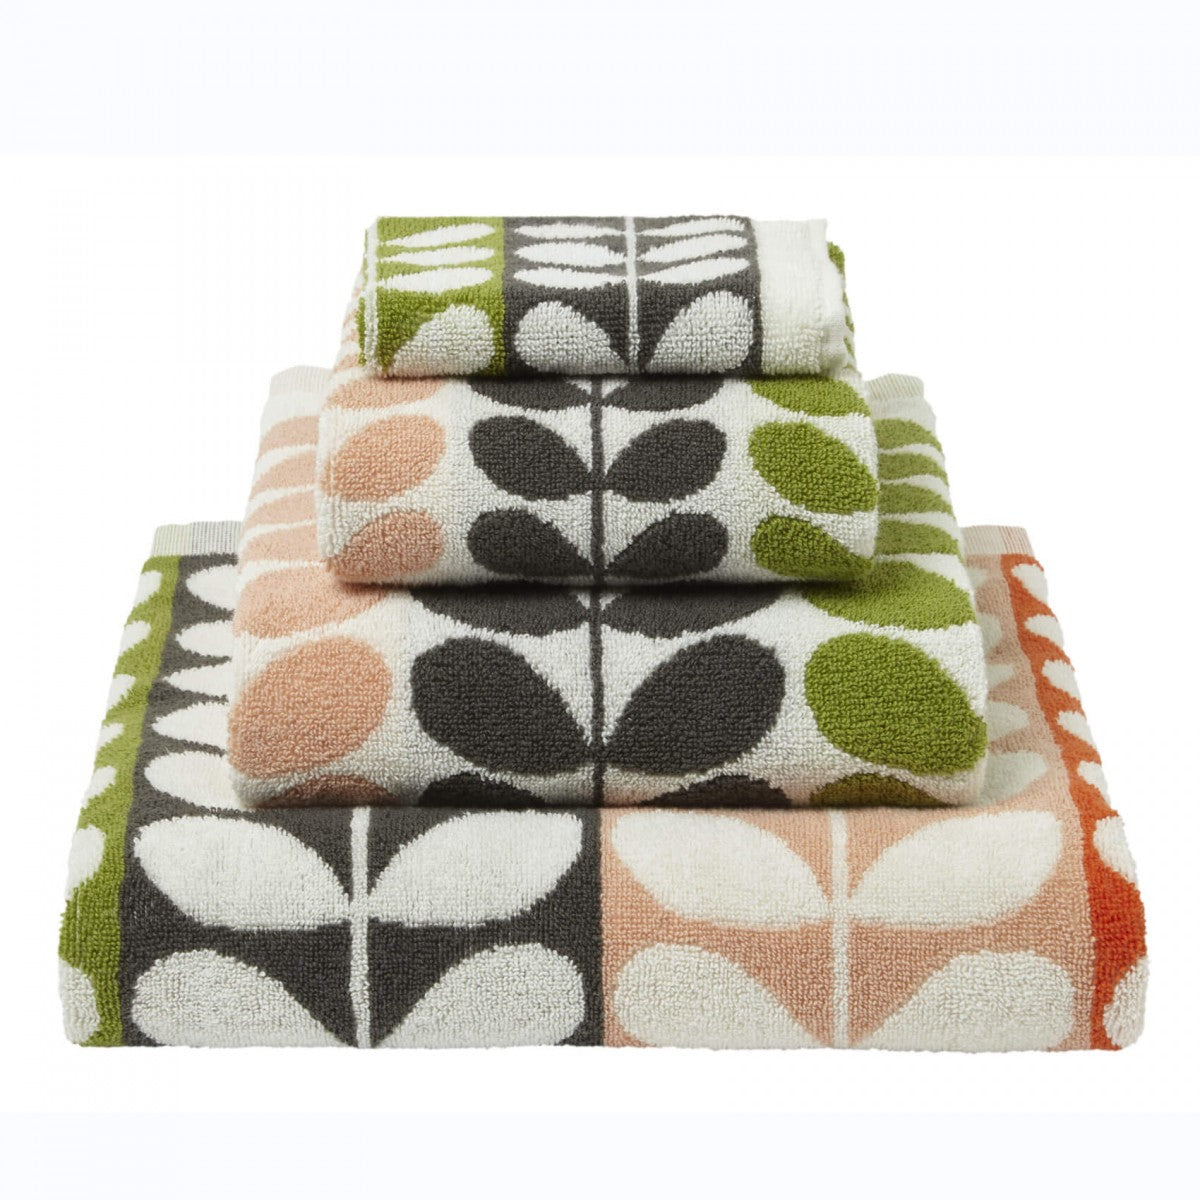 Orla Kiely Multi Stem Towels - Classic